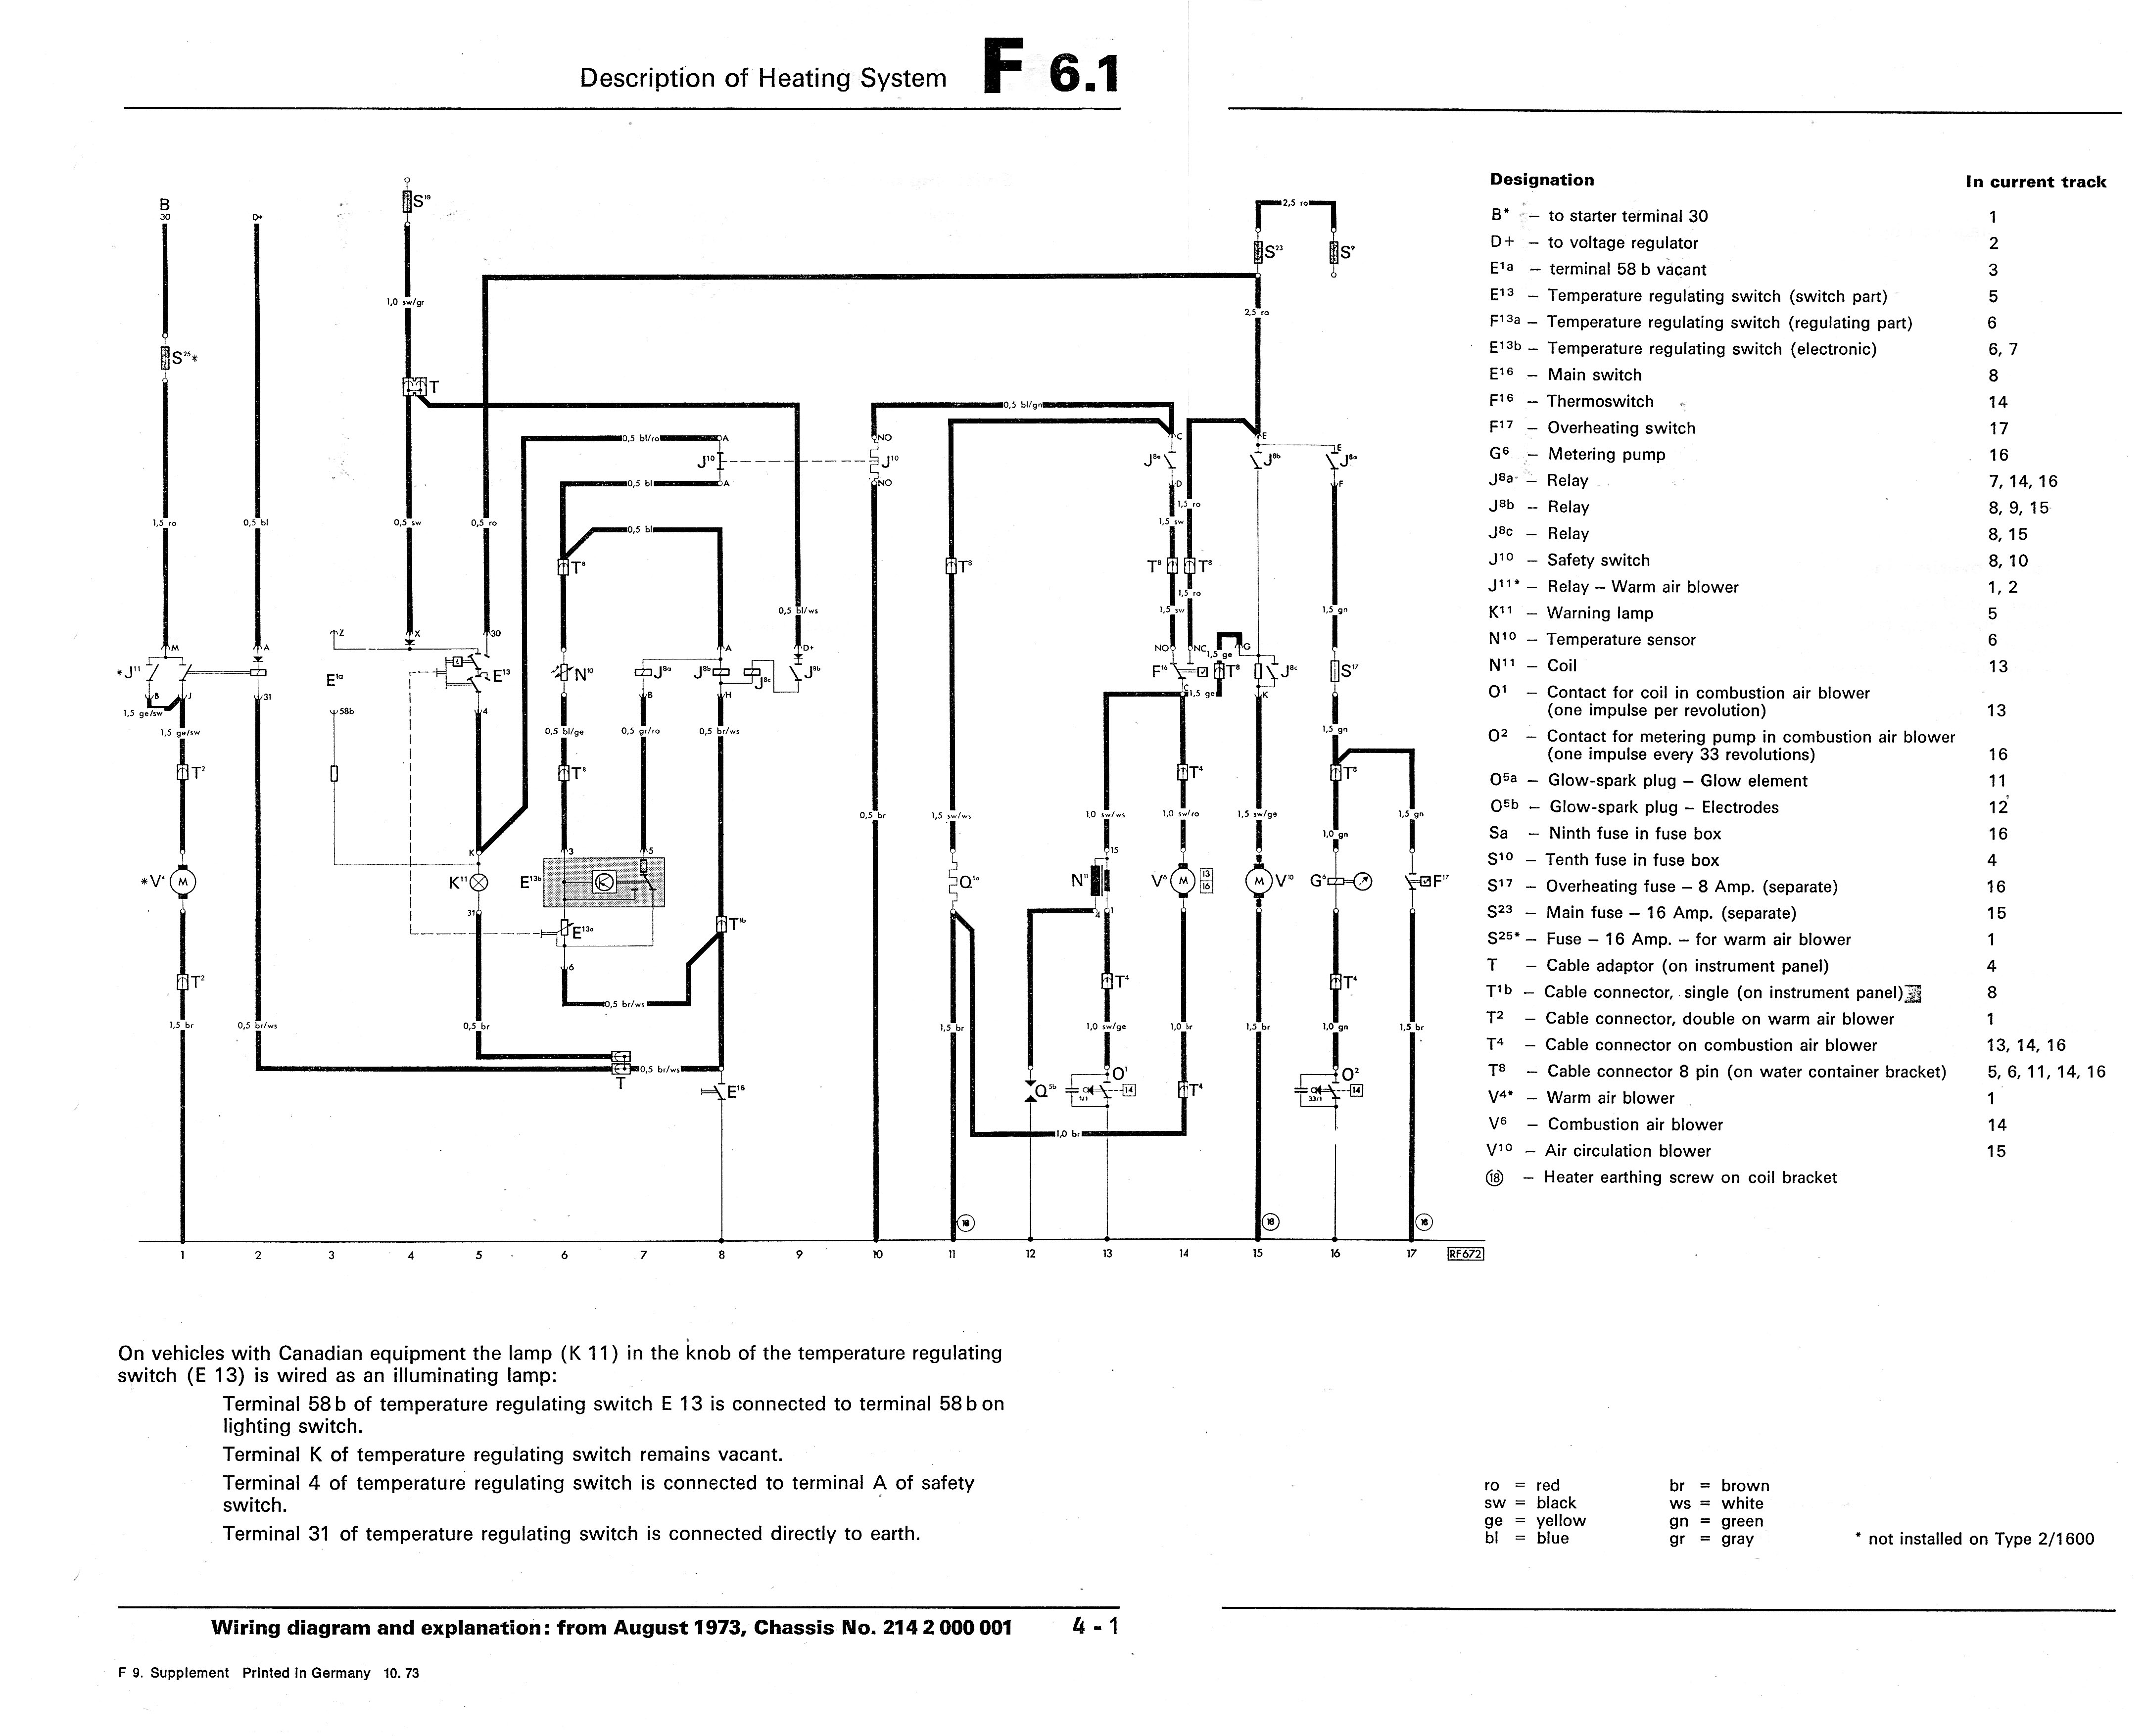 Funky Vw T5 Wiring Diagram Illustration Best Images For Wiring 88 Jeep  Cherokee Wiring Jeep J10 Wiring Diagram